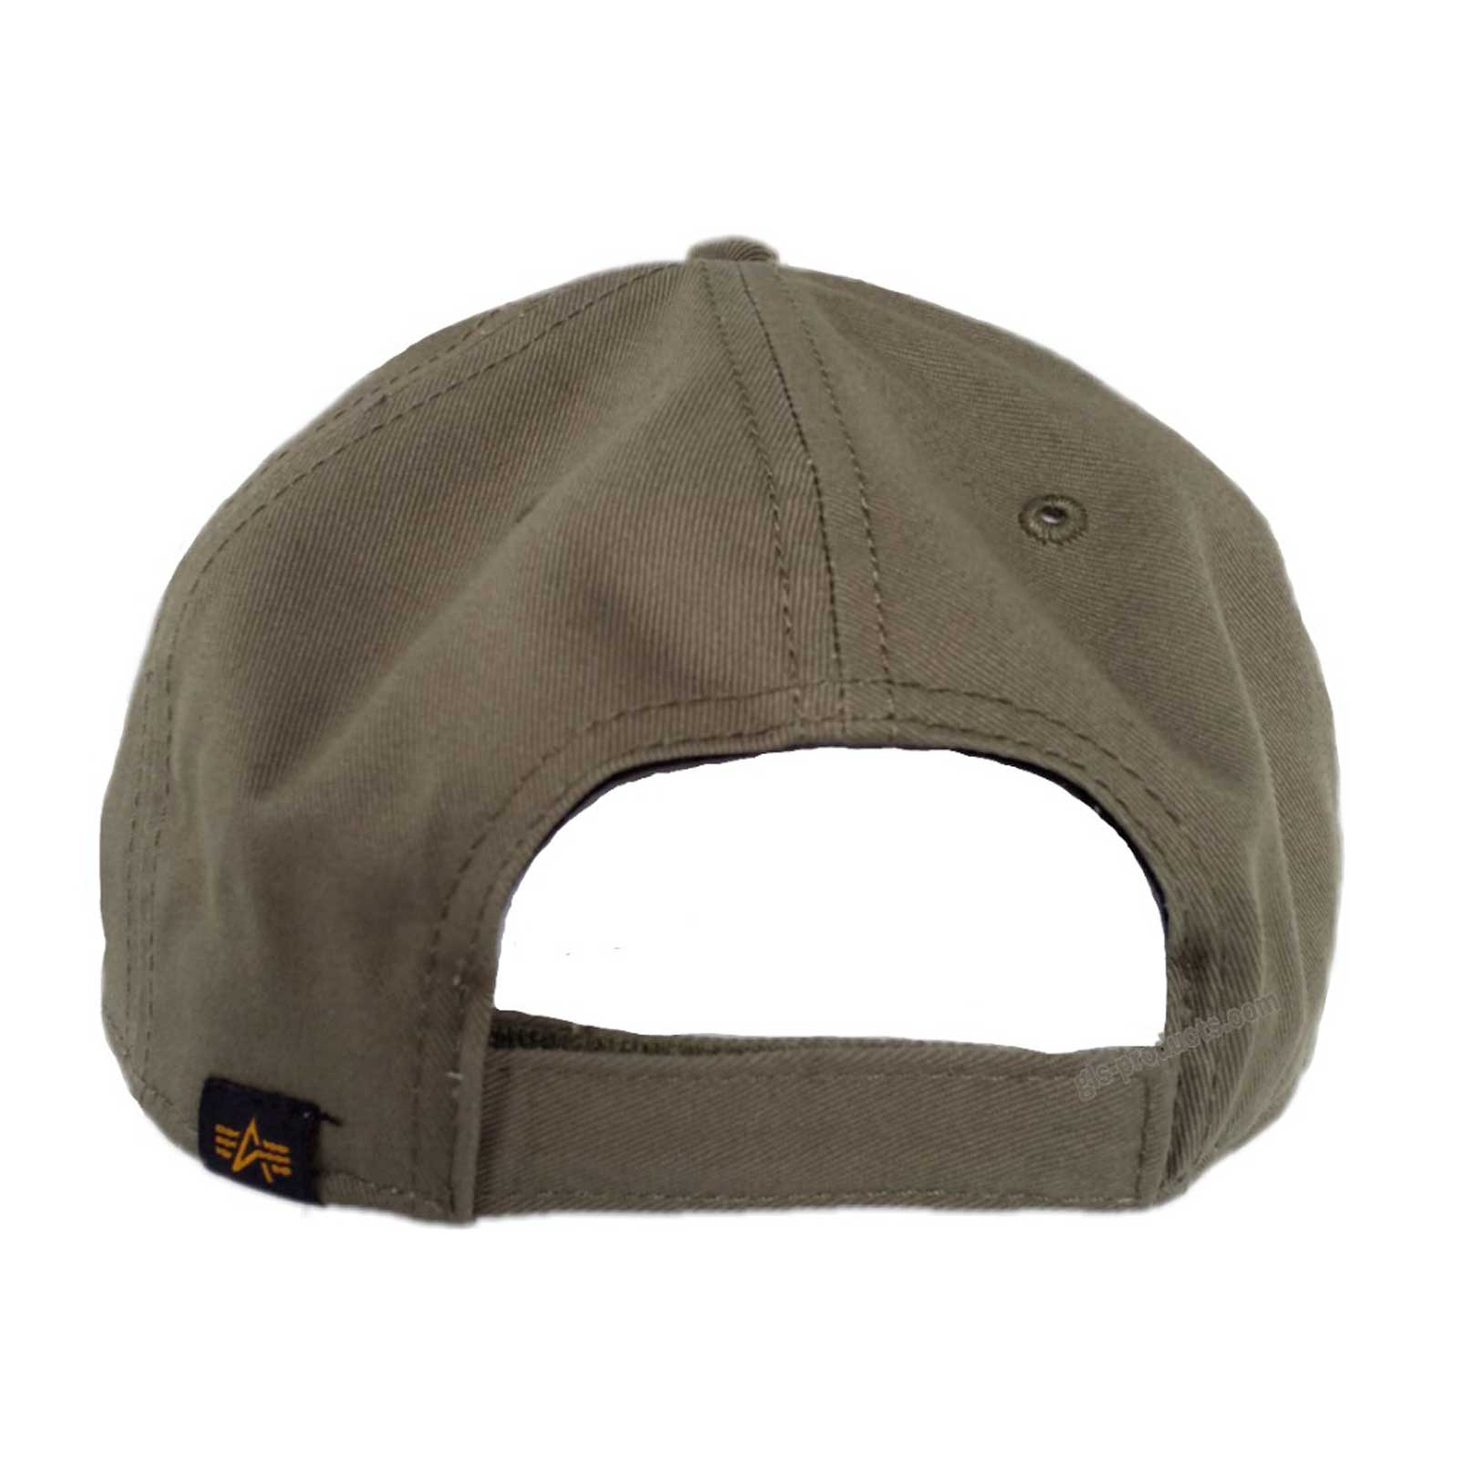 Alpha Industries VLC Patch Cap 196901 with 2 Patches – Picture 5